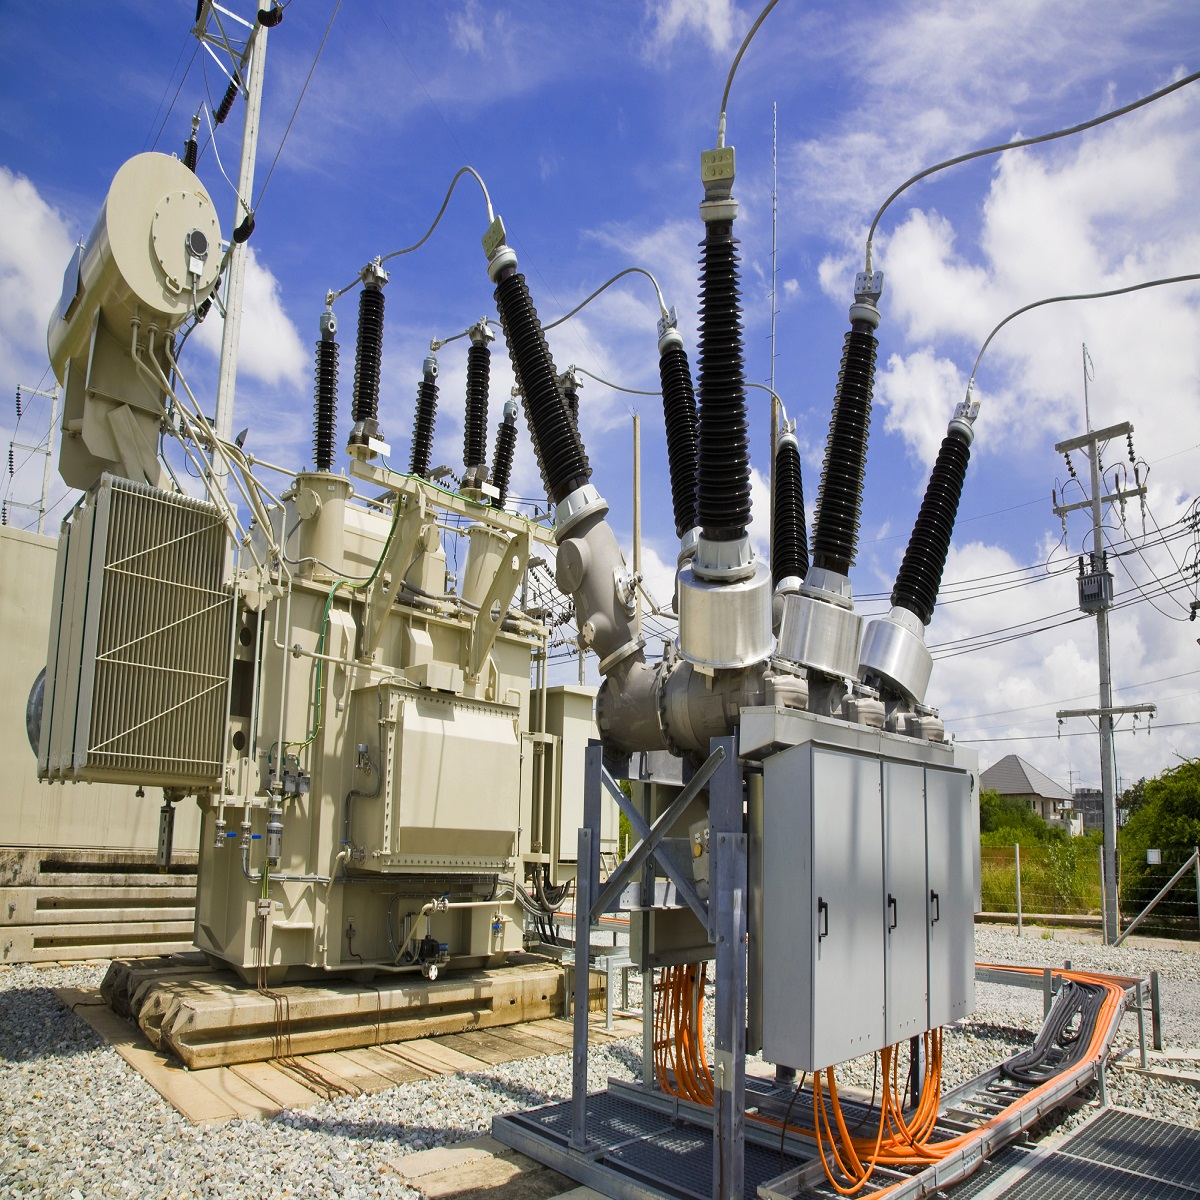 VGG Systems Energy & Electrical Engineering